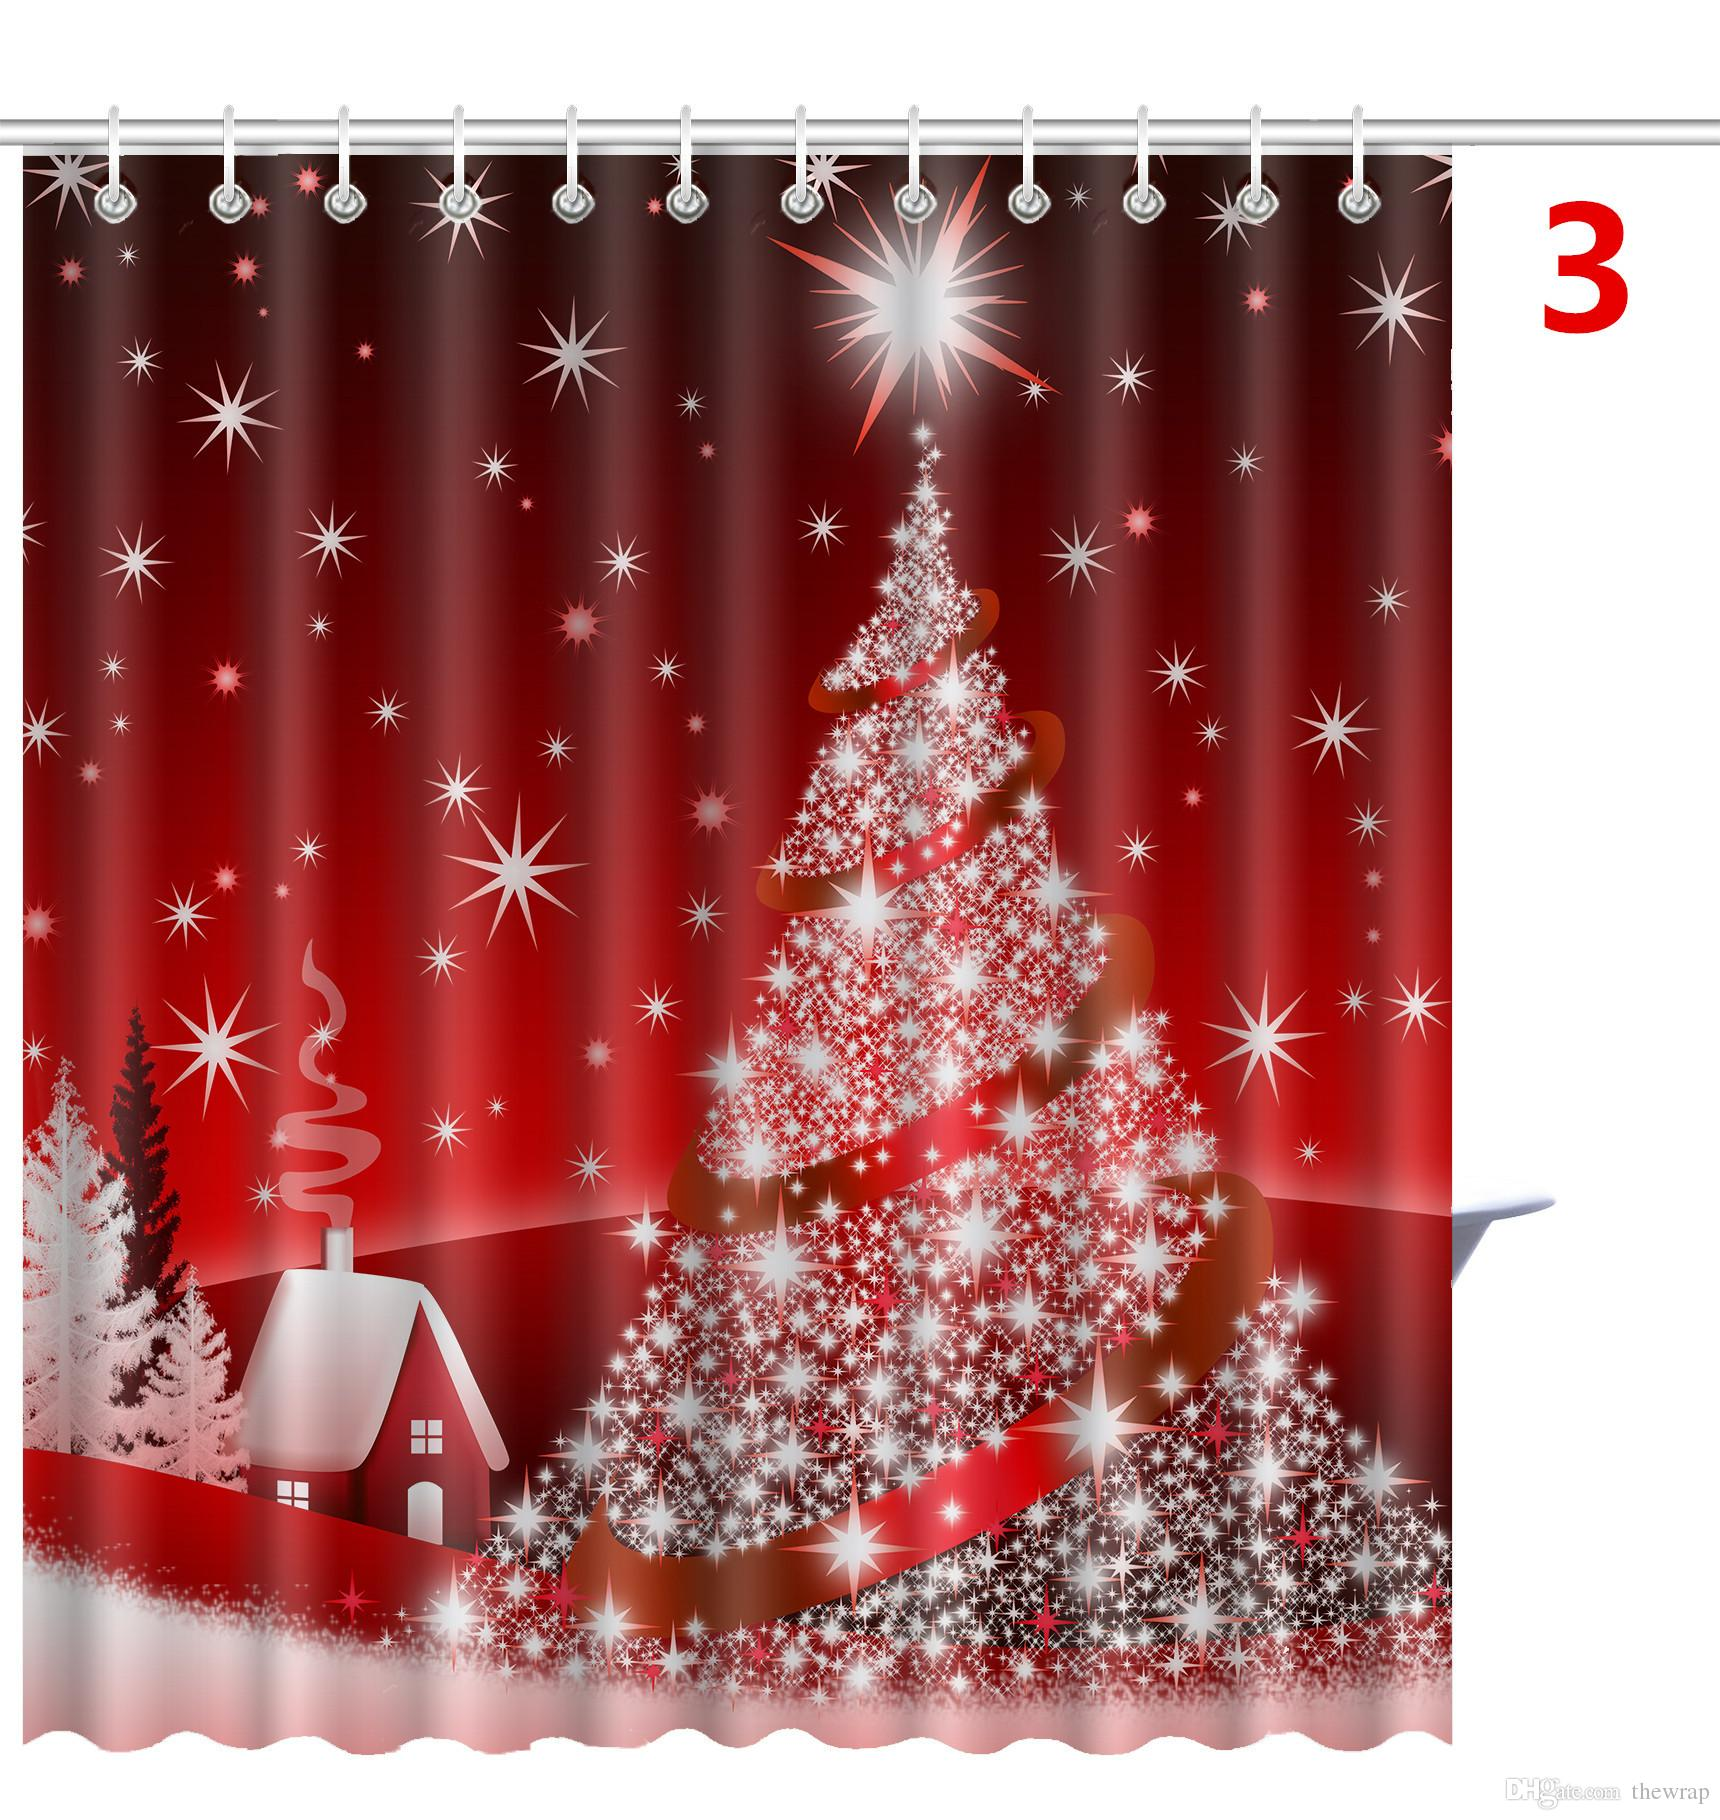 2019 Merry Christmas Shower Curtains Christmas Tree Snowman Santa Claus Patterns Bathroom Shower Curtains With 12 Hooks Bath Curtains From Thewrap